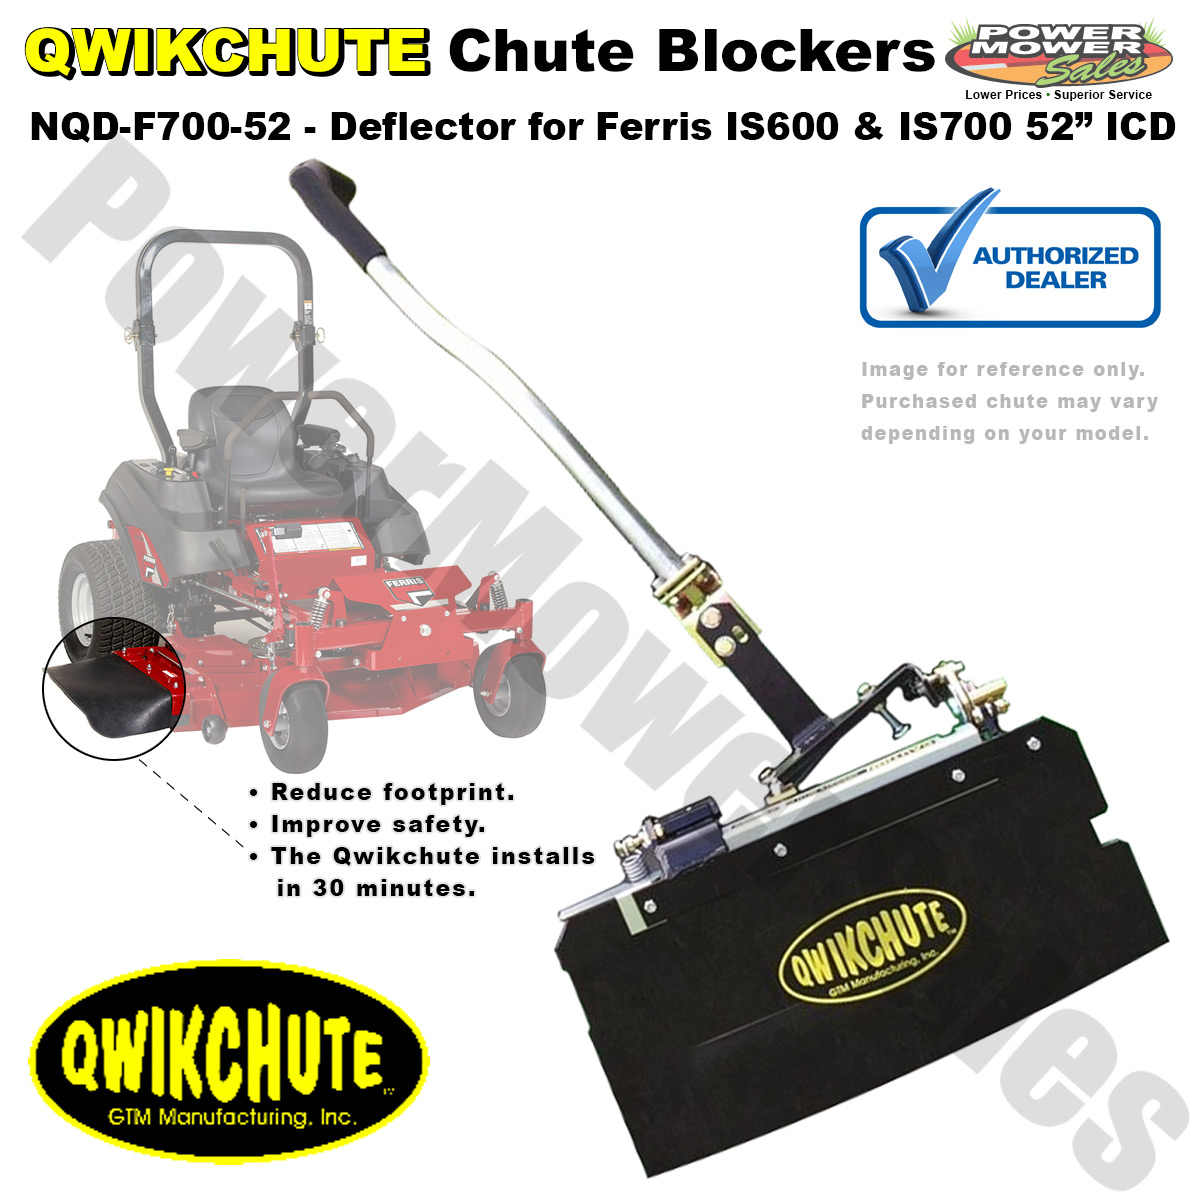 Qwikchute Chute Blocker / Deflector for Ferris IS600 & IS700 Lawn Mowers  with 52 inch ICD Decks / NQD-F700-52